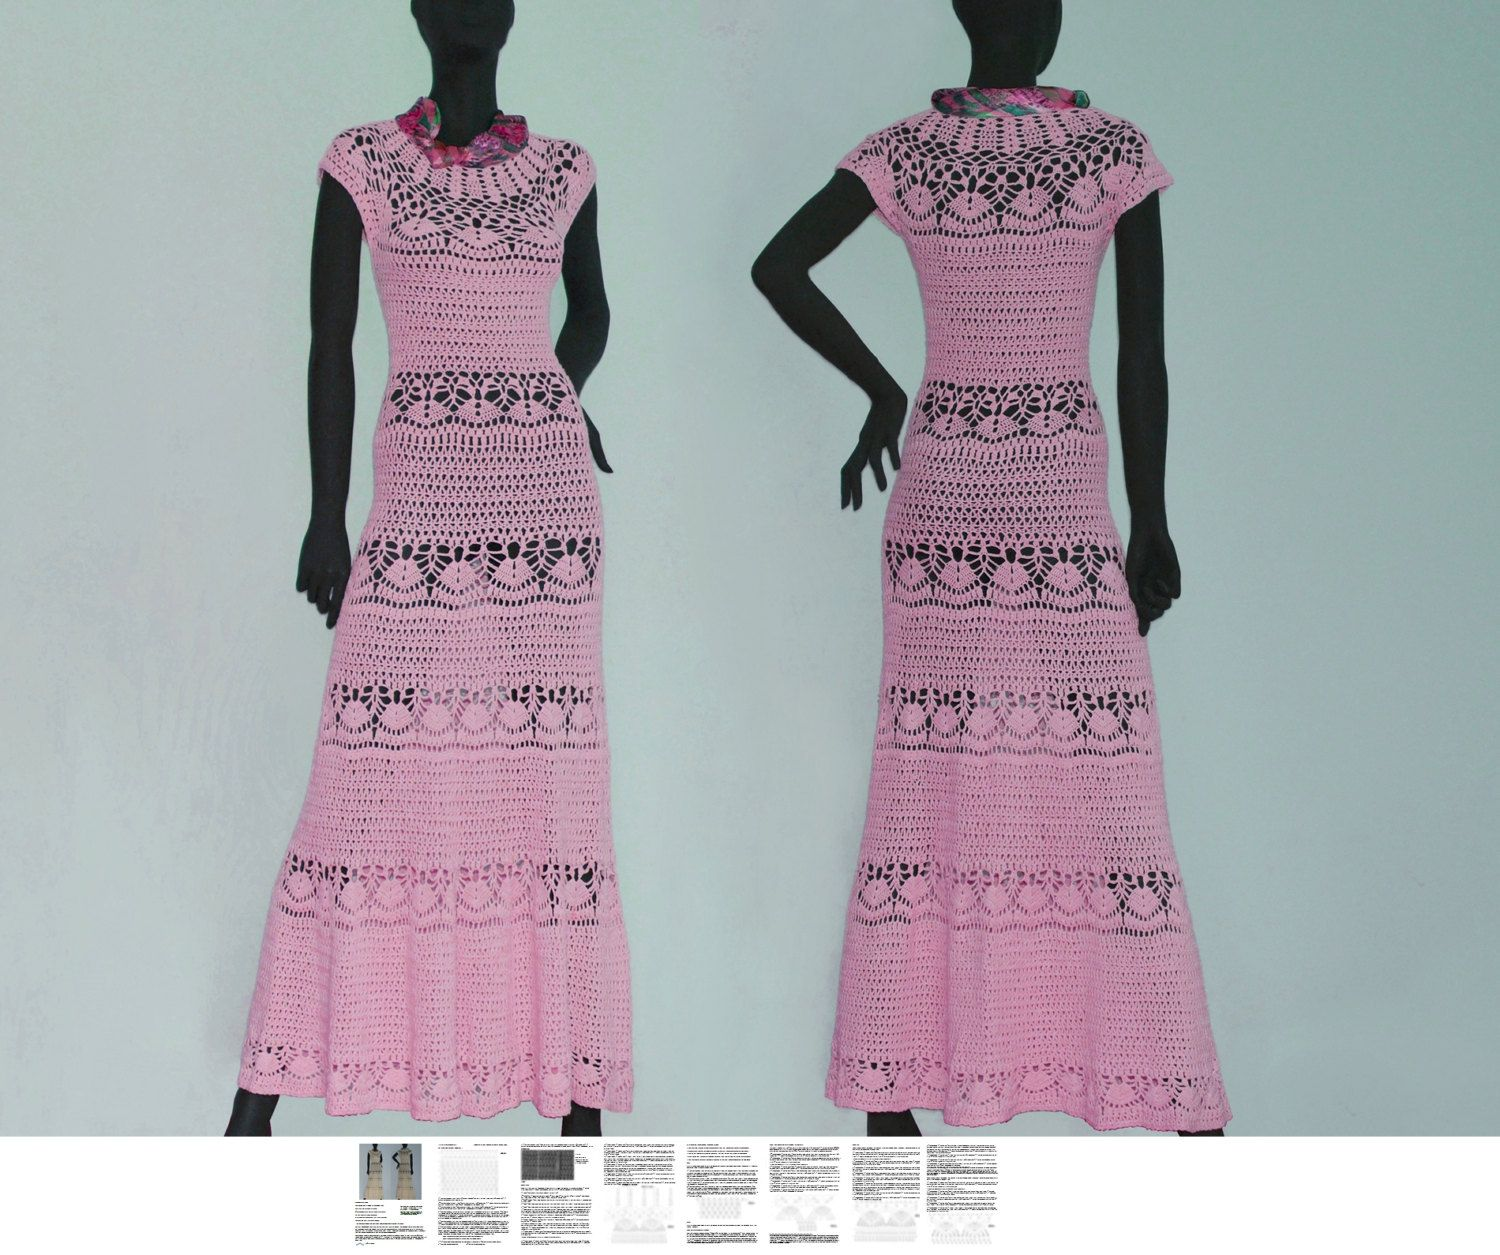 Maxi dress crochet PATTERN, sizes XS-3XL, detailed TUTORIAL for ...